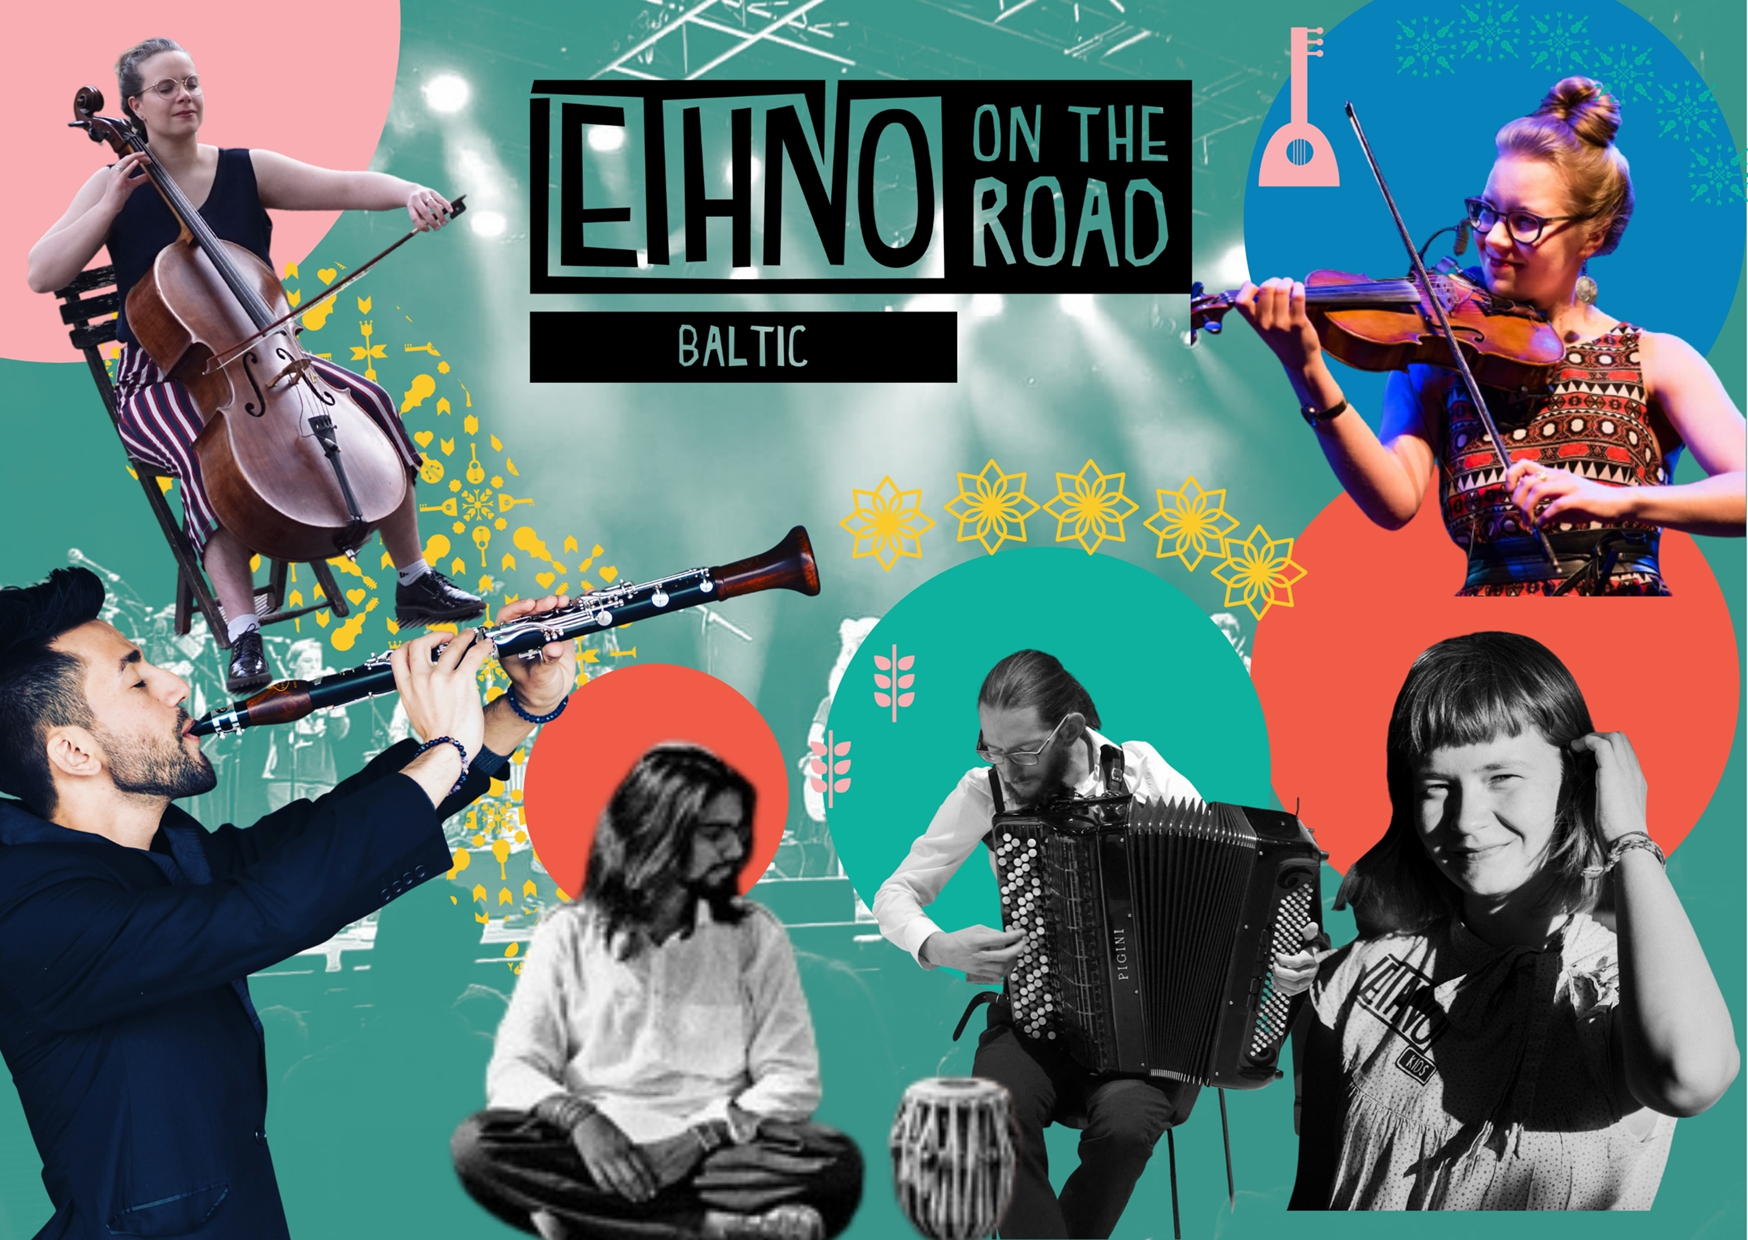 Baltic Ethno Band To Tour In Four Countries